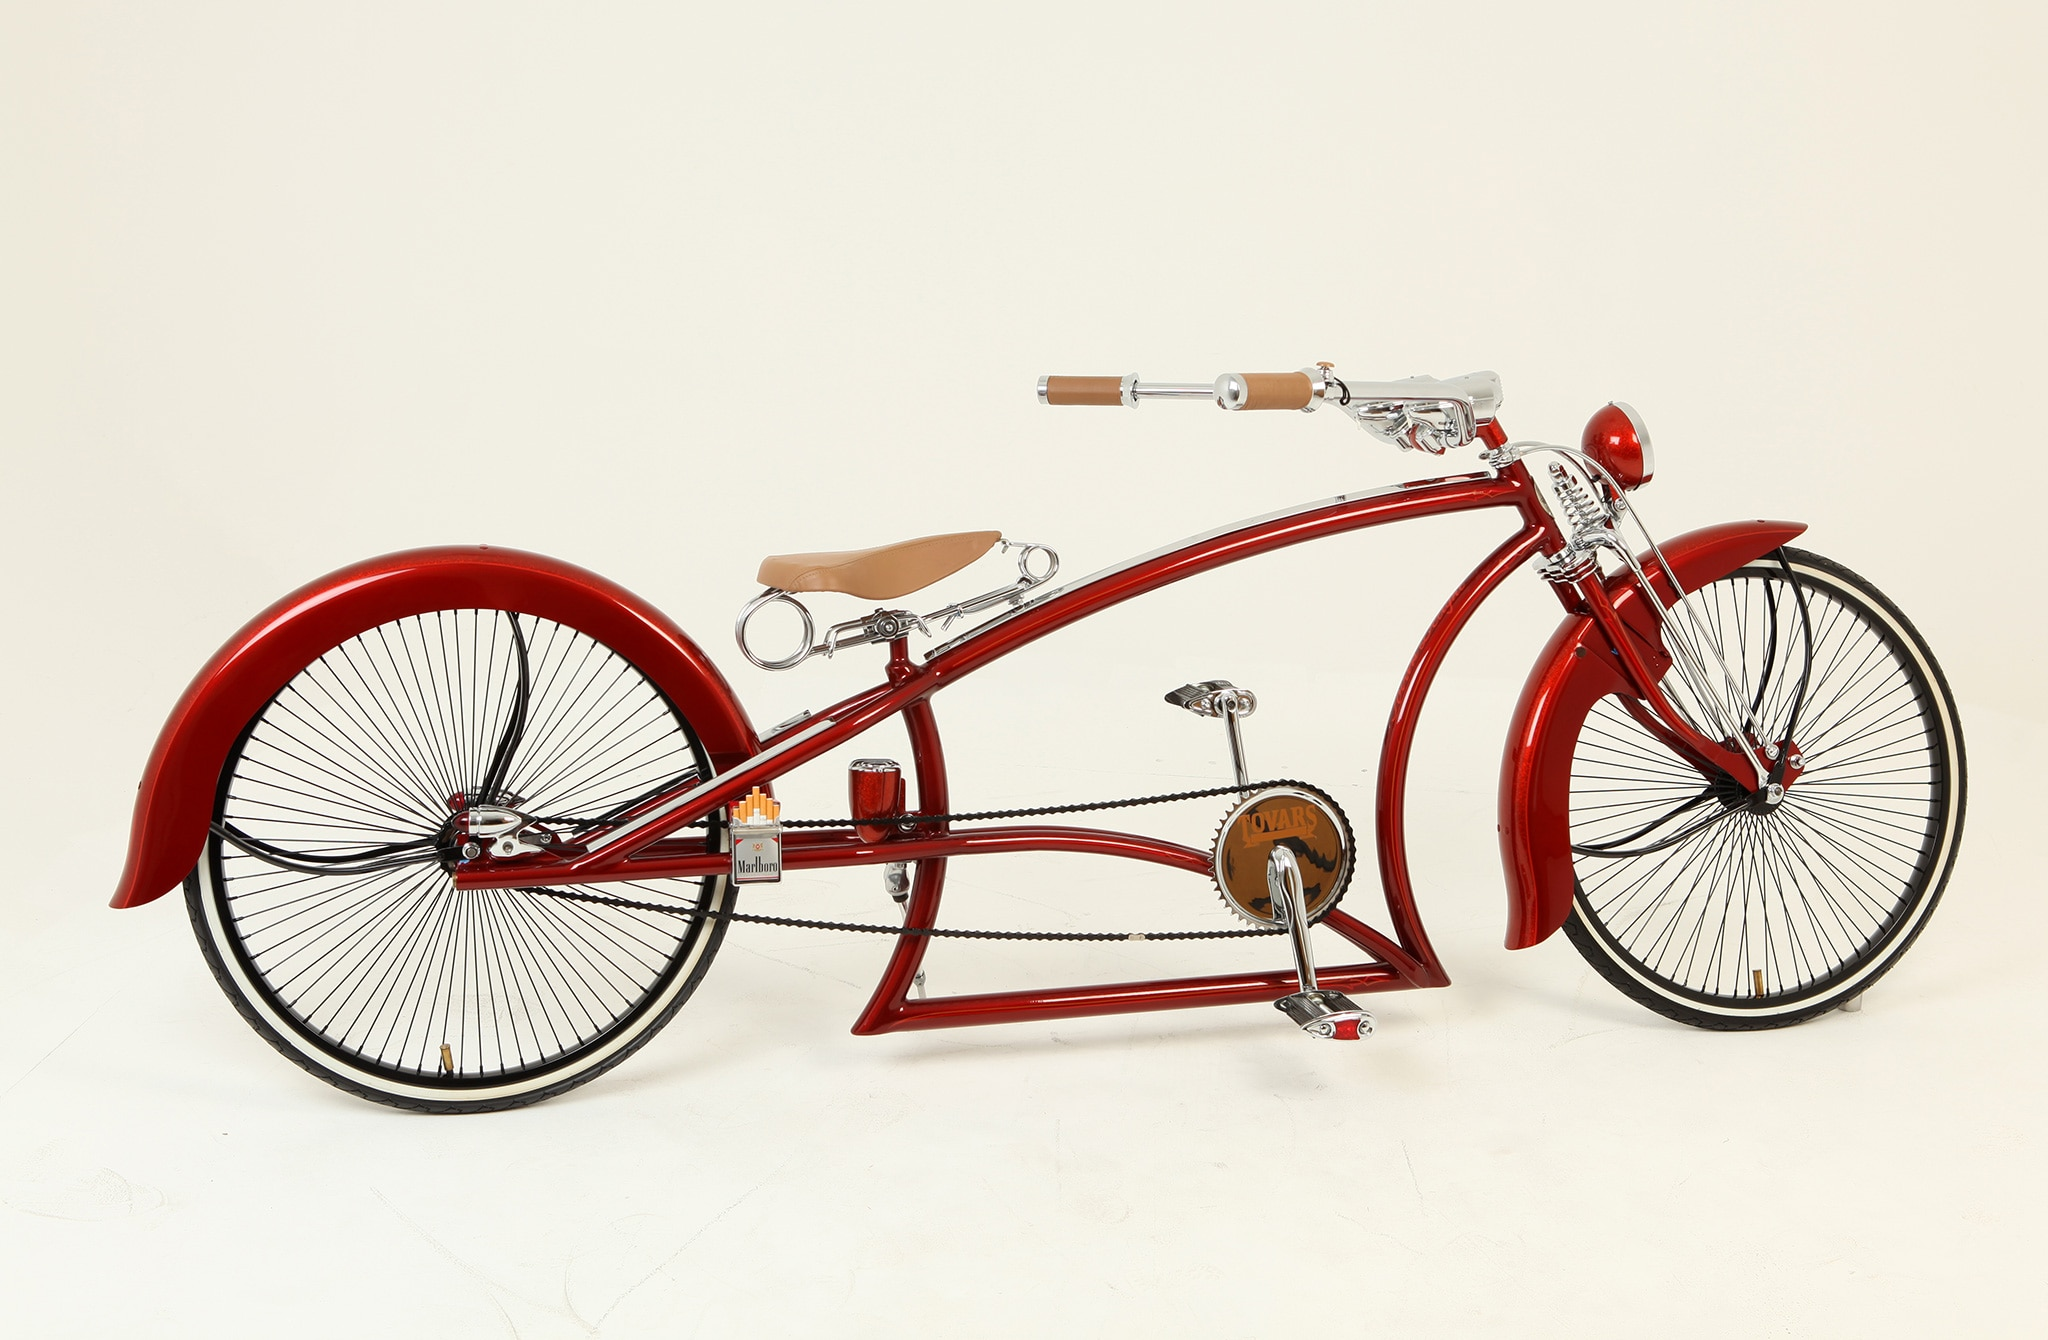 Lowrider Bike Parts And Accessories | BCCA